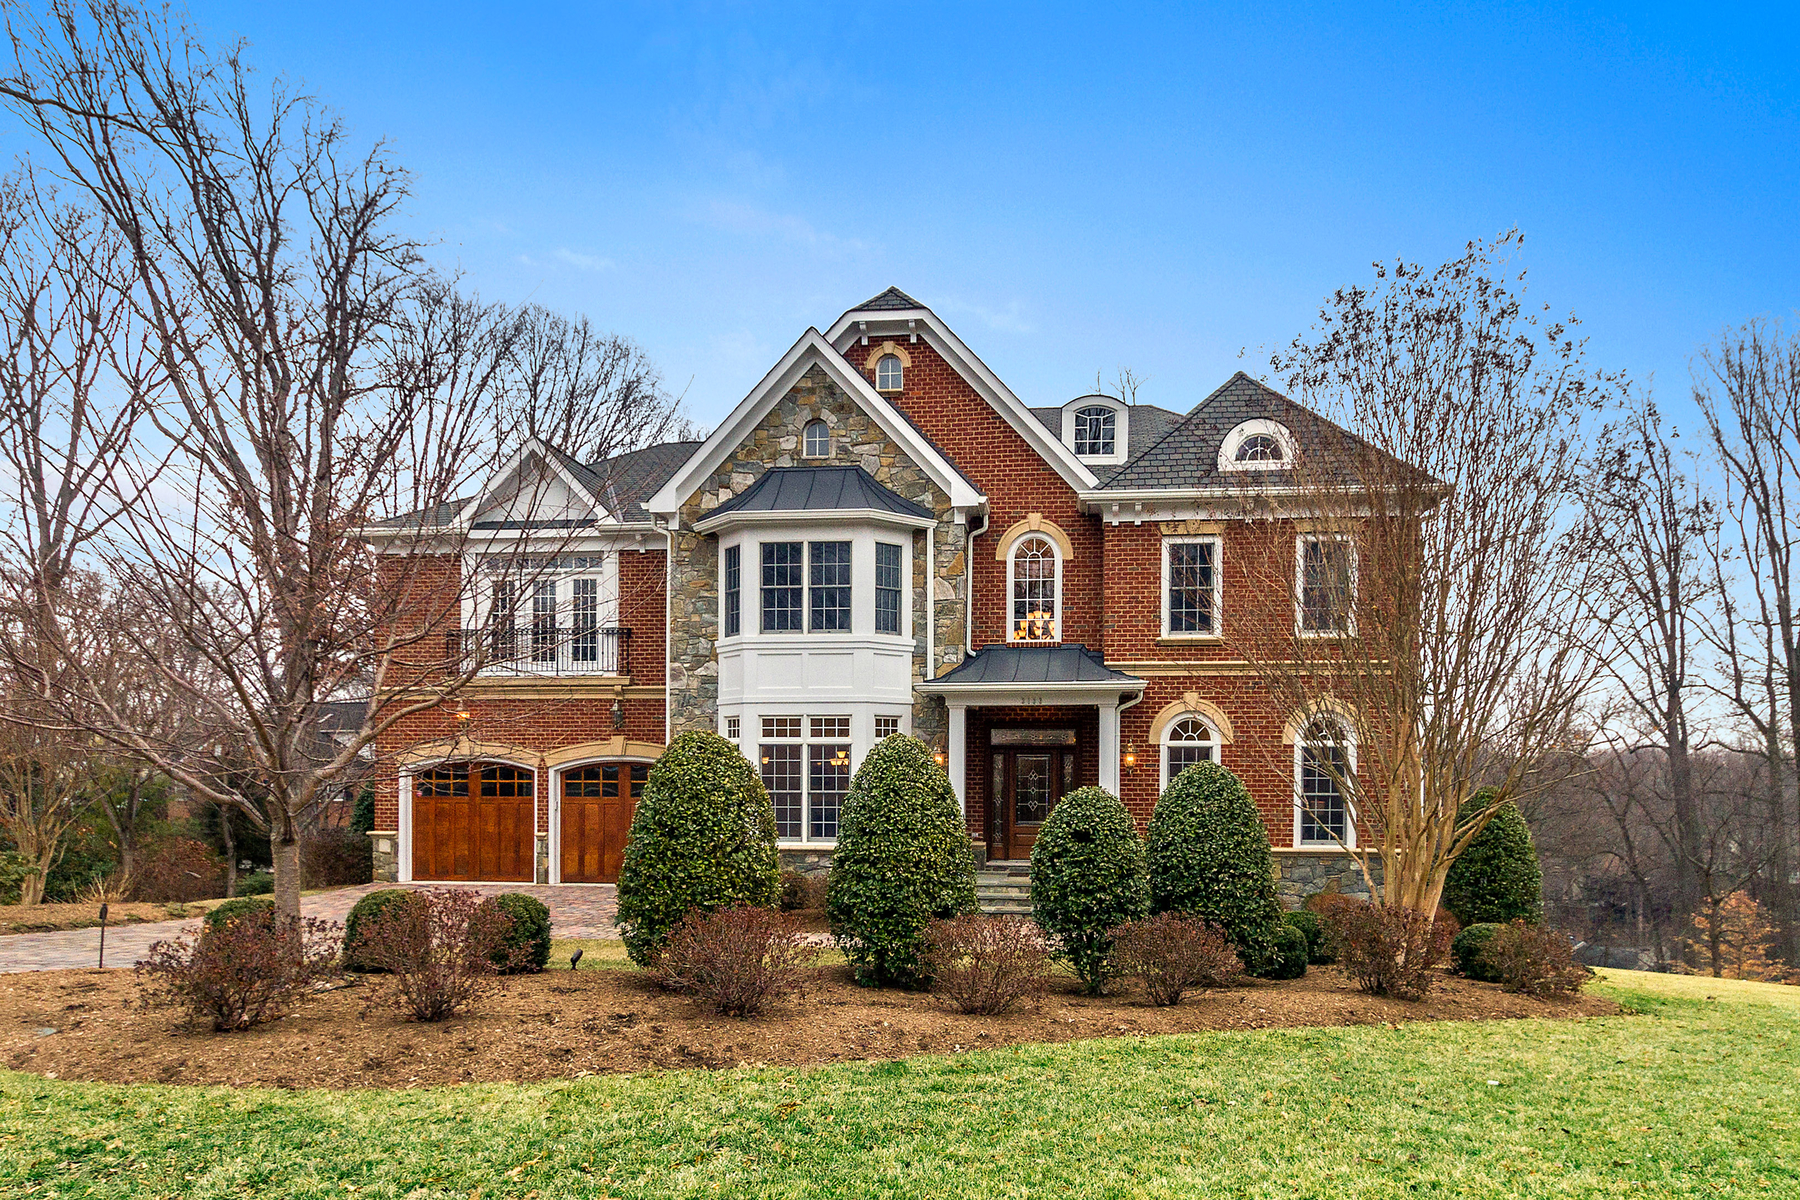 Single Family Home for Sale at Bellevue Forest 3133 Piedmont Street N Arlington, Virginia, 22207 United States